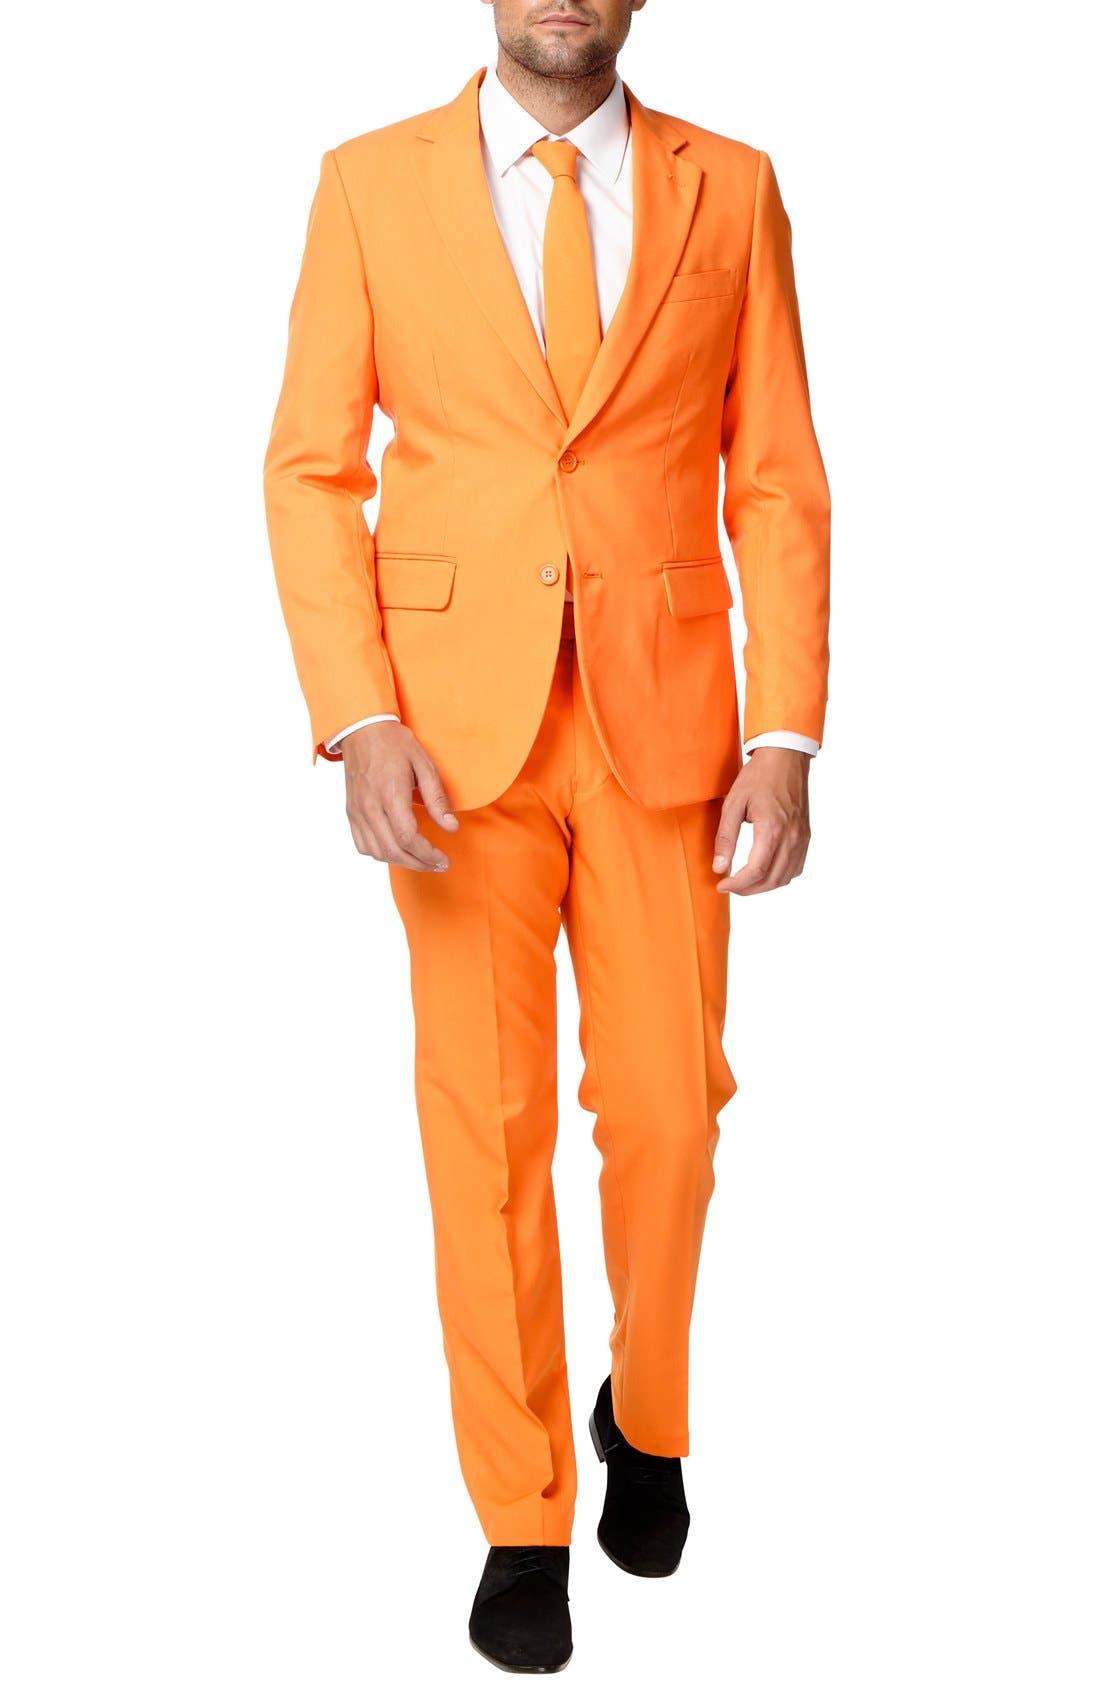 Alternate Image 4  - OppoSuits 'The Orange' Trim Fit Two-Piece Suit with Tie